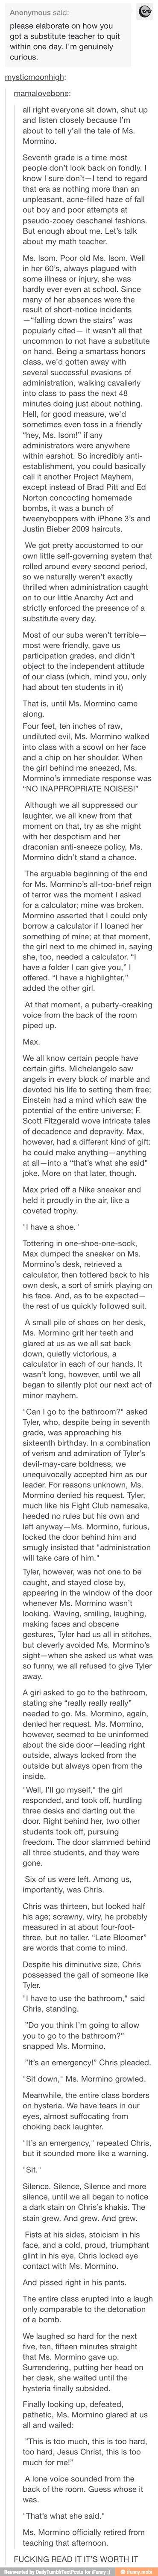 THIS WAS REALLY LONG BUT OUT OF ALL THE REALLY LONG TUMBLR STORIES YOU SEE OUT THERE THIS IS BY FAR THE BEST